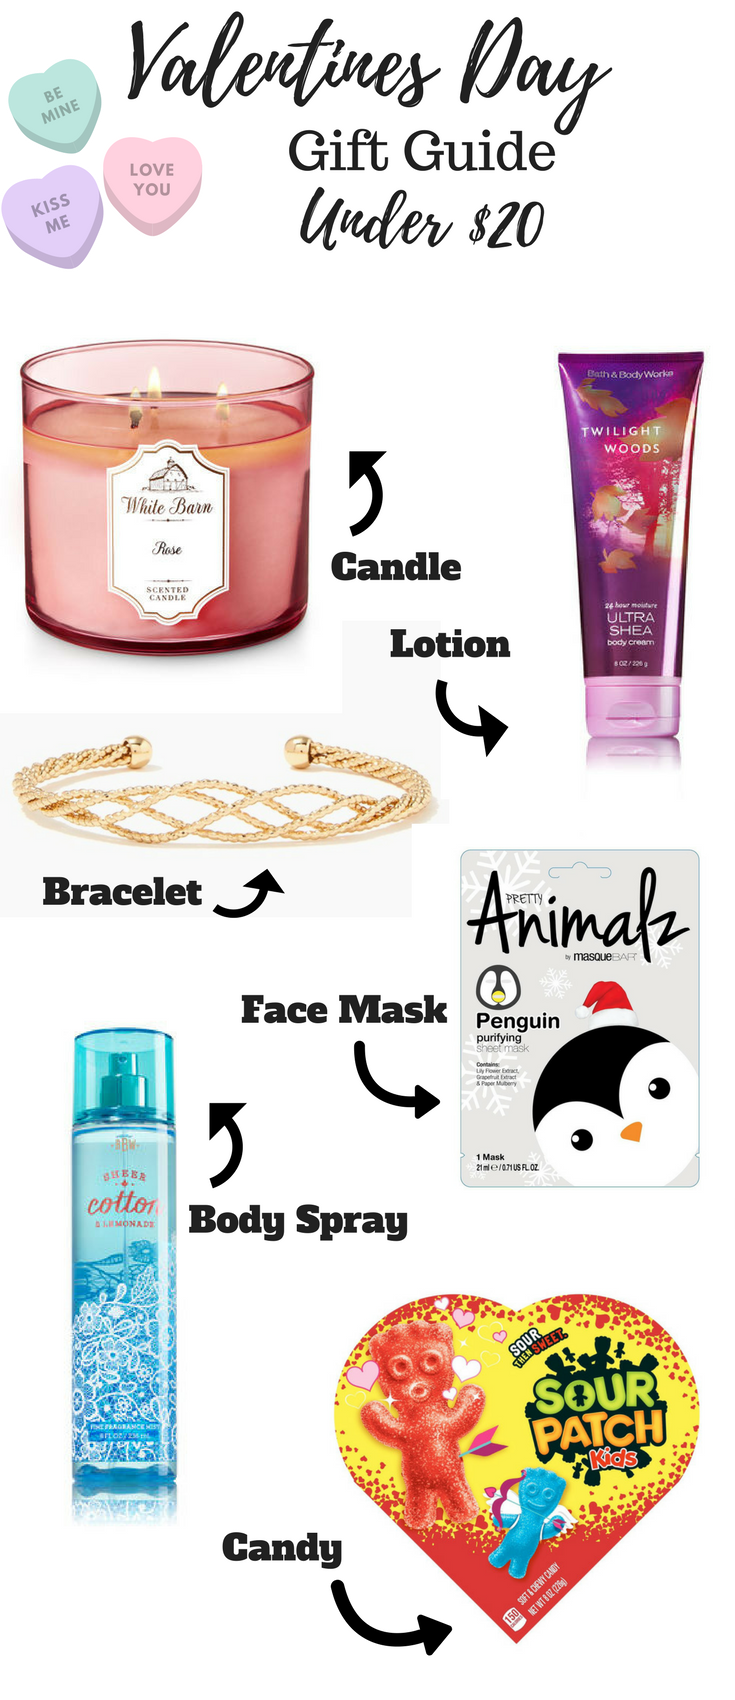 Valentines Day Gift Ideas under $20